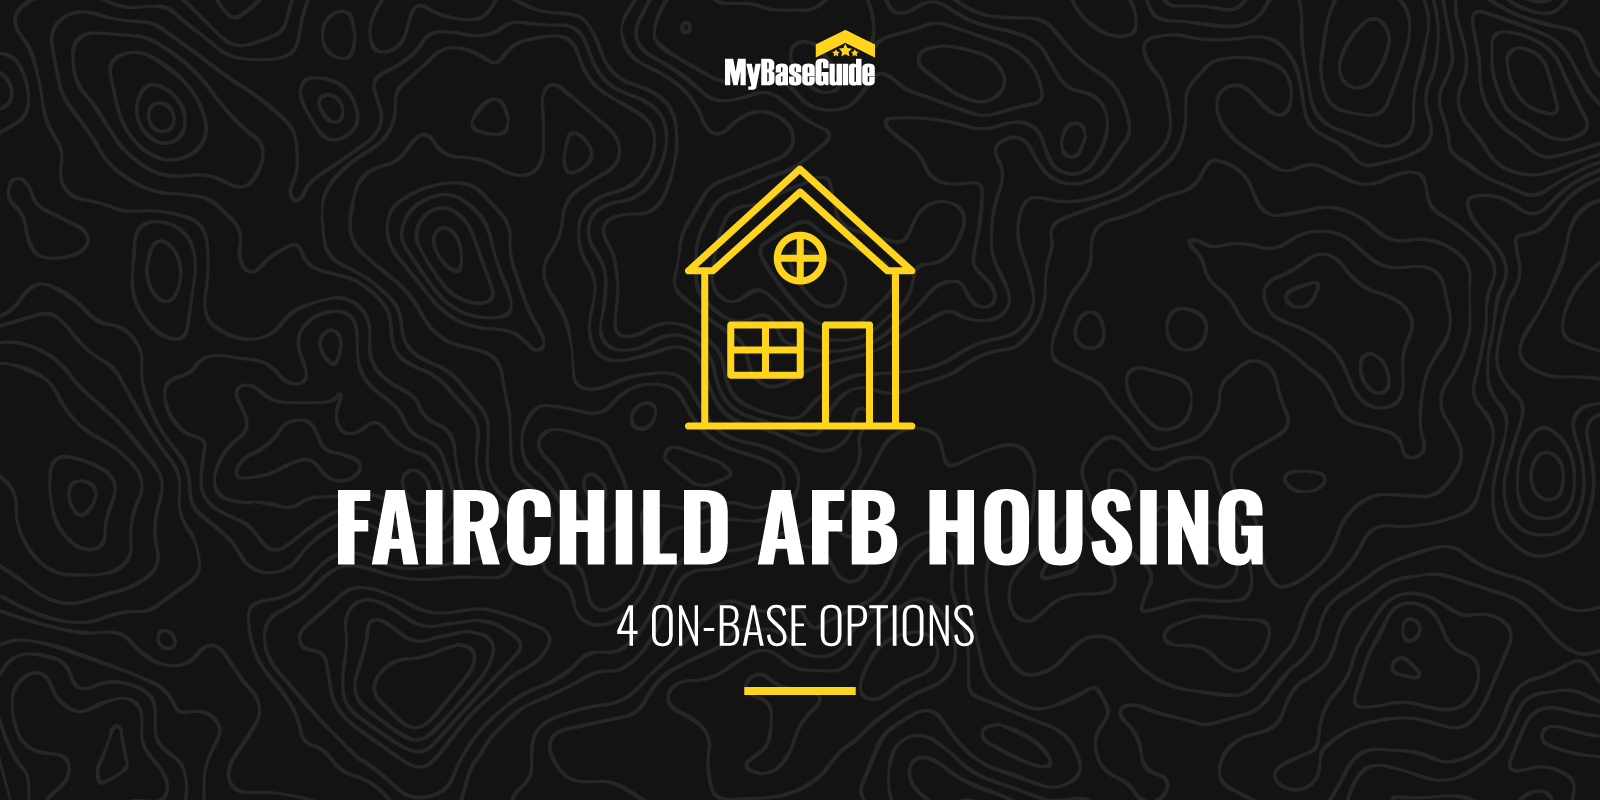 Fairchild AFB Housing: 4 On-Base Options